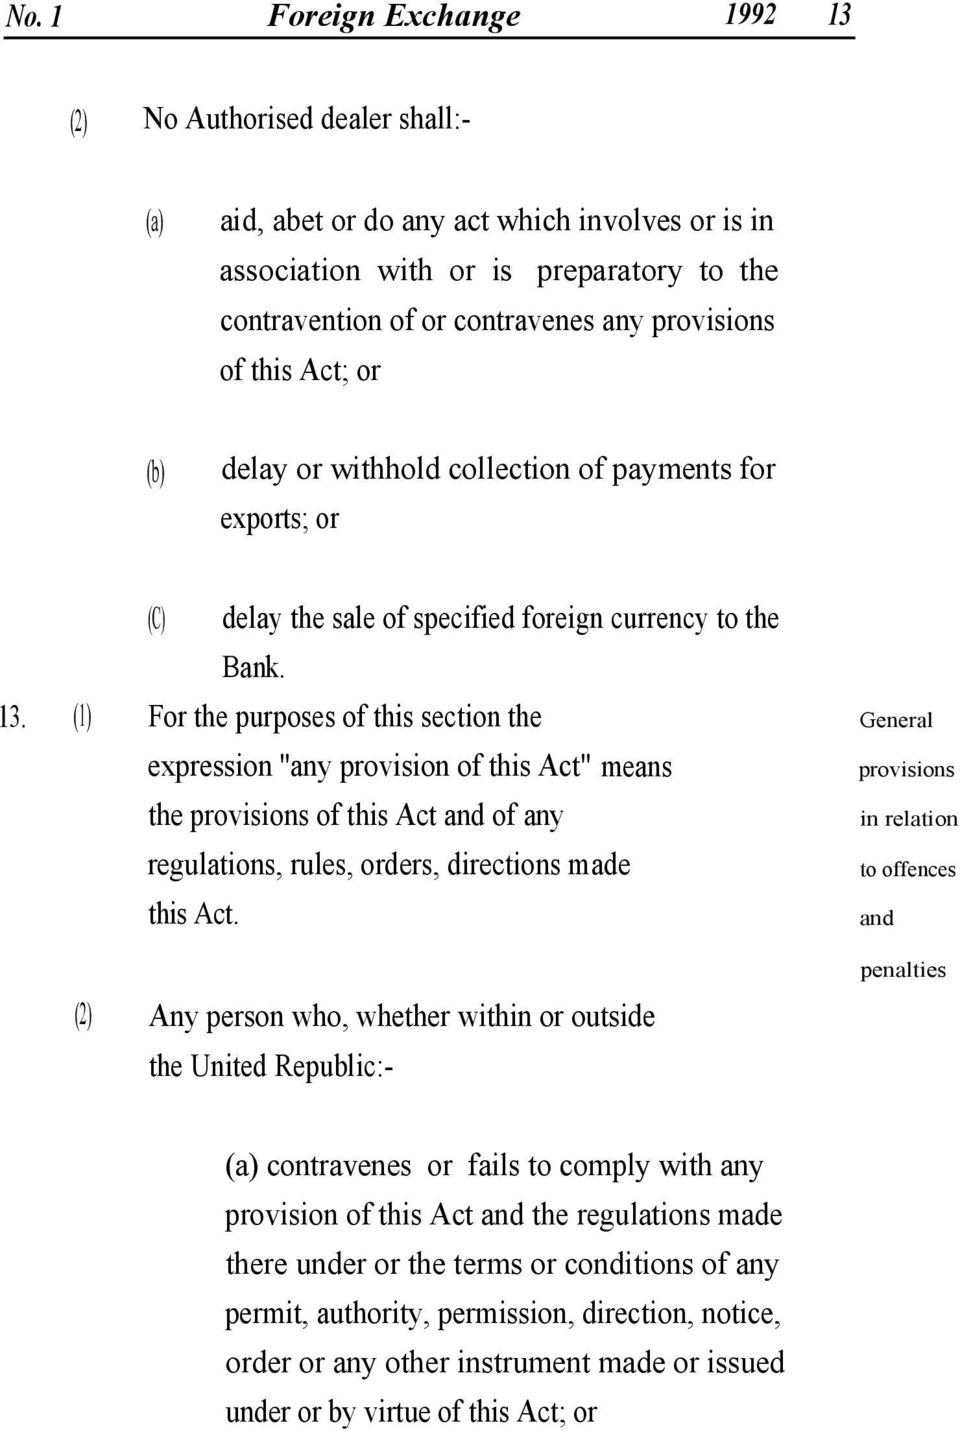 (1) General For the purposes of this section the expression ''any provision of this Act'' means the provisions of this Act and of any regulations, rules, orders, directions made this Act.